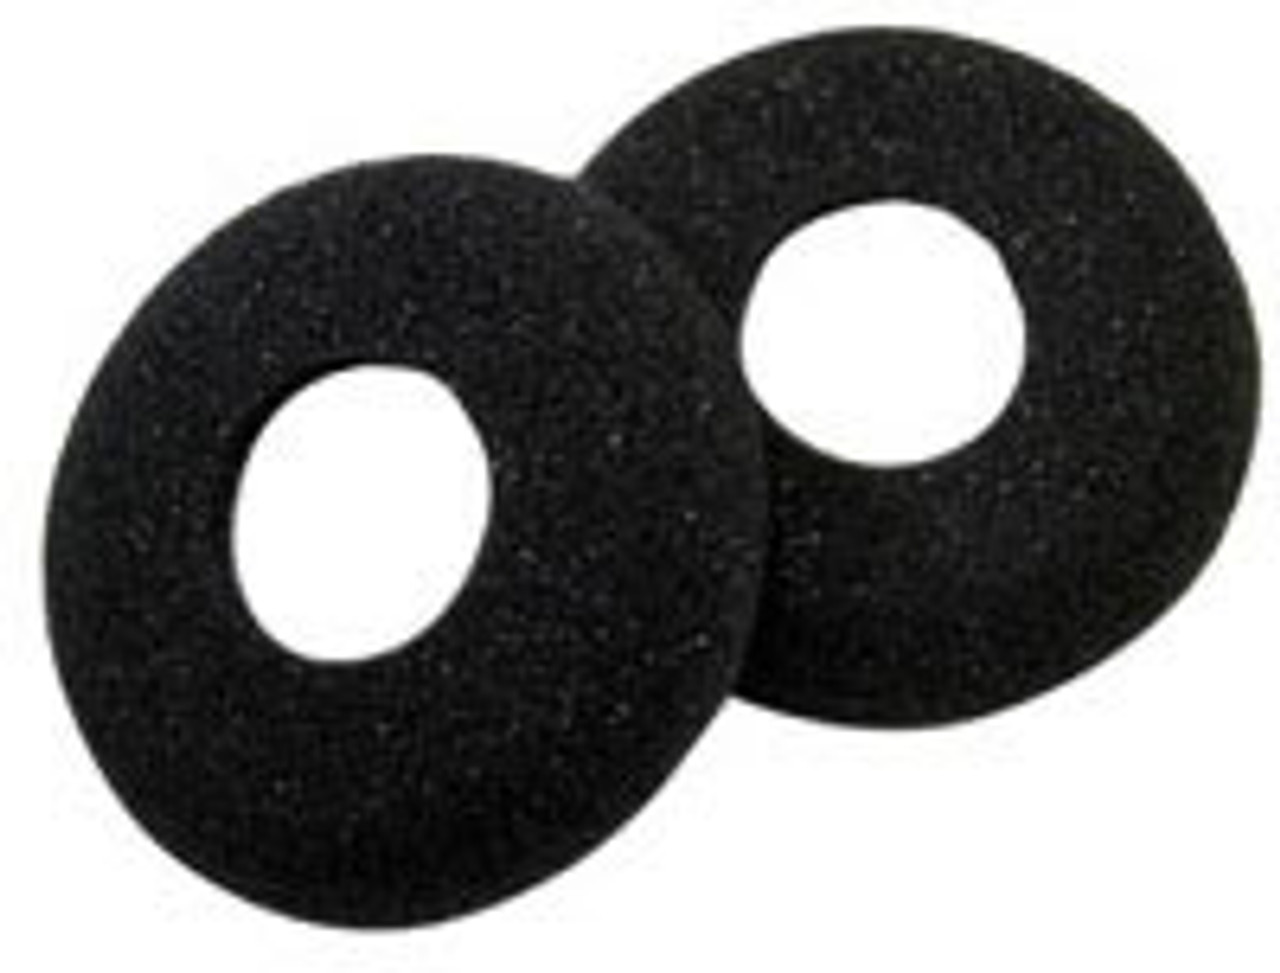 Telex Airman 850 Replacement Foam Ear Cushions